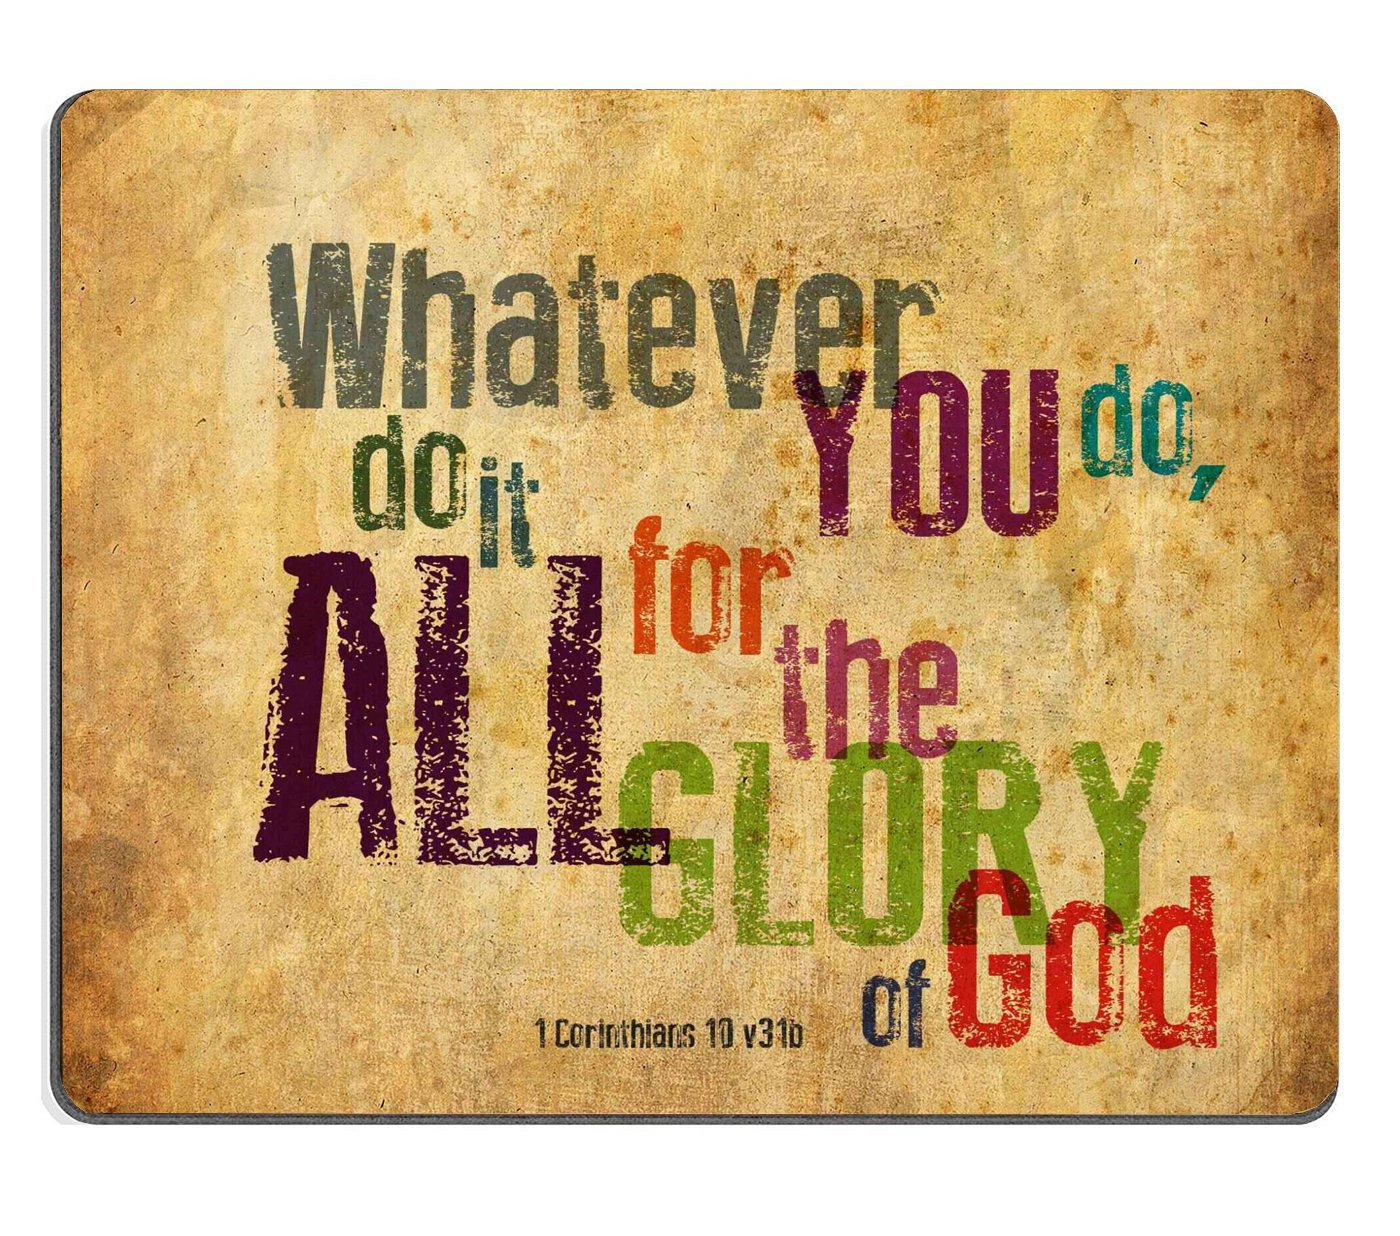 Christian Bible Verse Mouse Pad Whatever You Do Do It All For The Glory Of God 1corinthlans 10 V31b Mousepad Custom Freely Cloth Cover 9 84 X 7 87 Uc41 Buy Christian Bible Verse